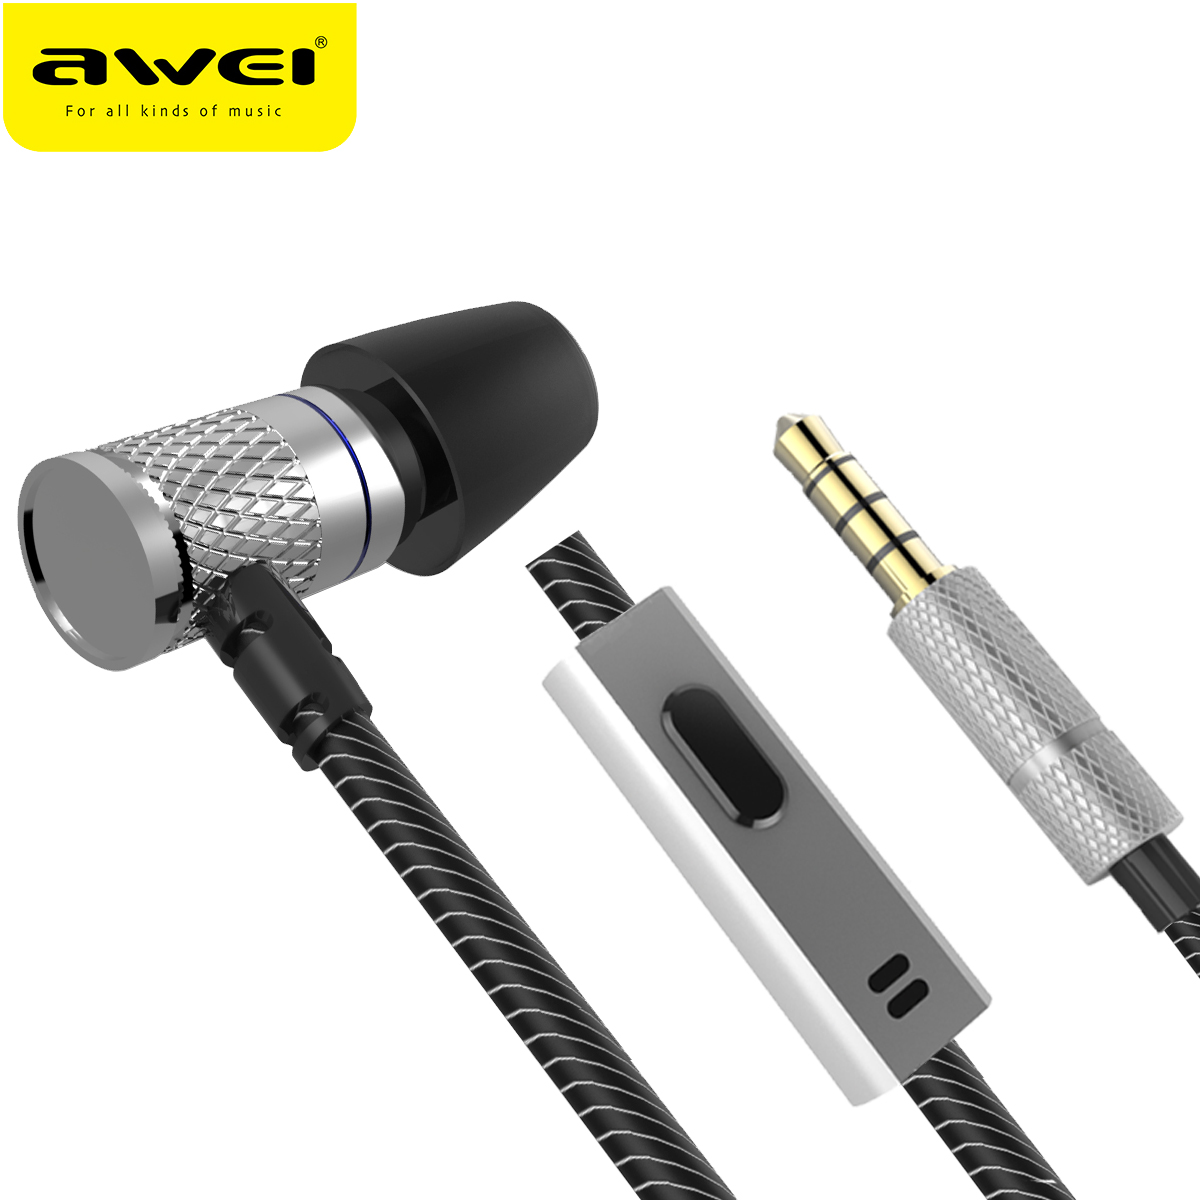 AWEI ES-660I In-Ear Wired Earphone Metal Headset HIFI fone de ouvido Audifonos Casque Heavy Bass Earbuds Headset With Mic awei q5i metal headphones stereo earphones super bass headset fone de ouvido kulaklik auriculares audifonos ecouteur with mic